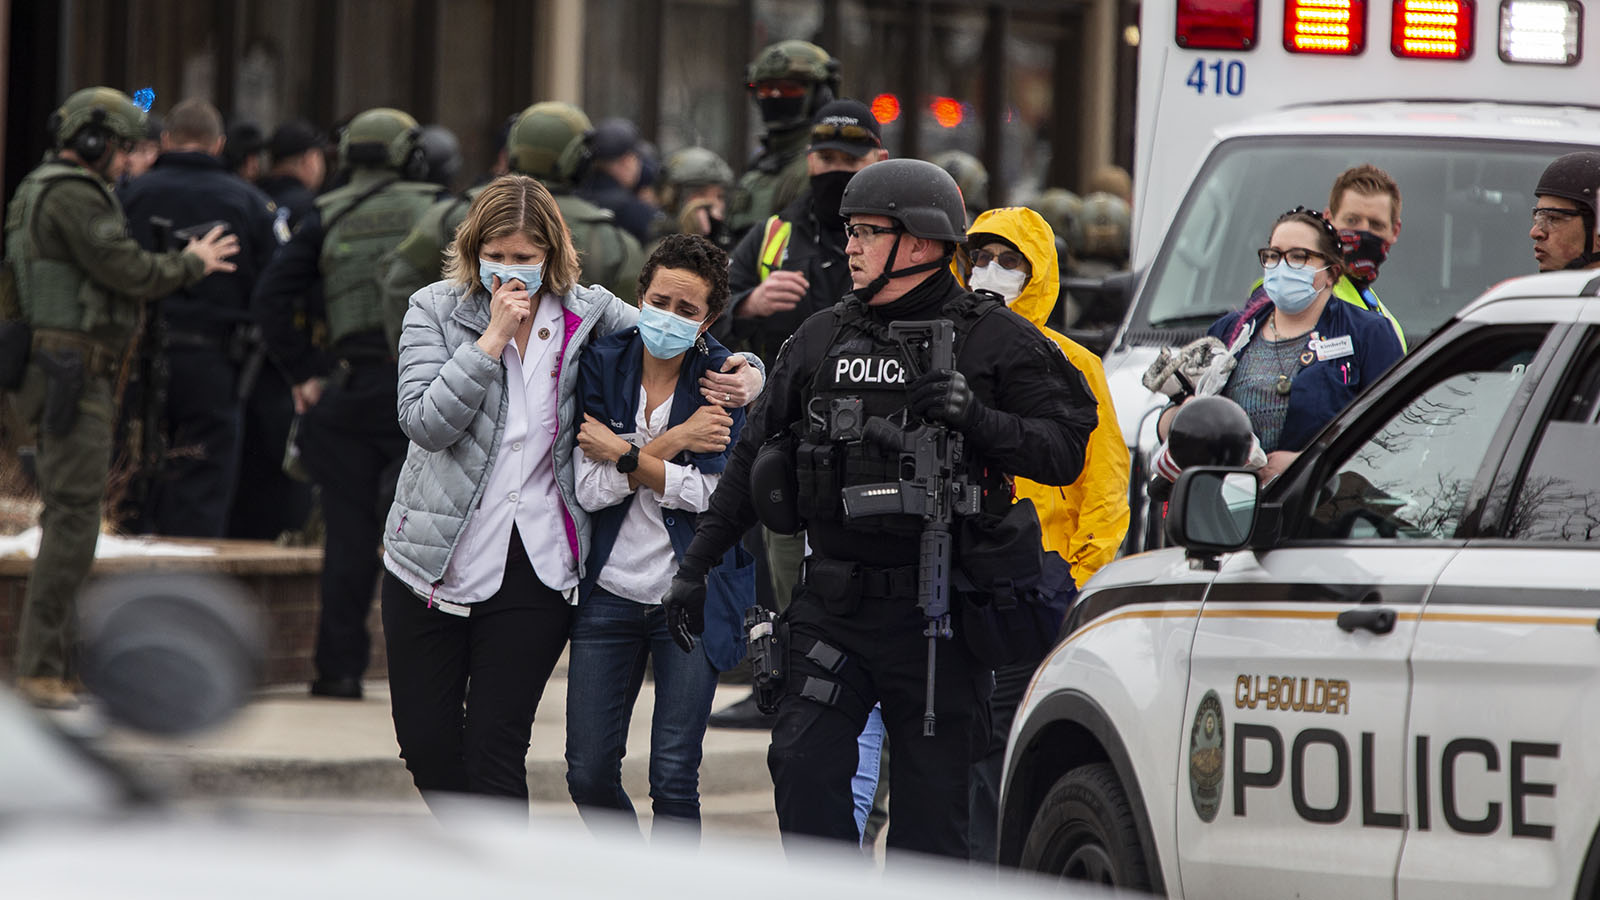 Healthcare workers walk out of a King Sooper's Grocery store after a gunman opened fire on March 22, in Boulder, Colorado.